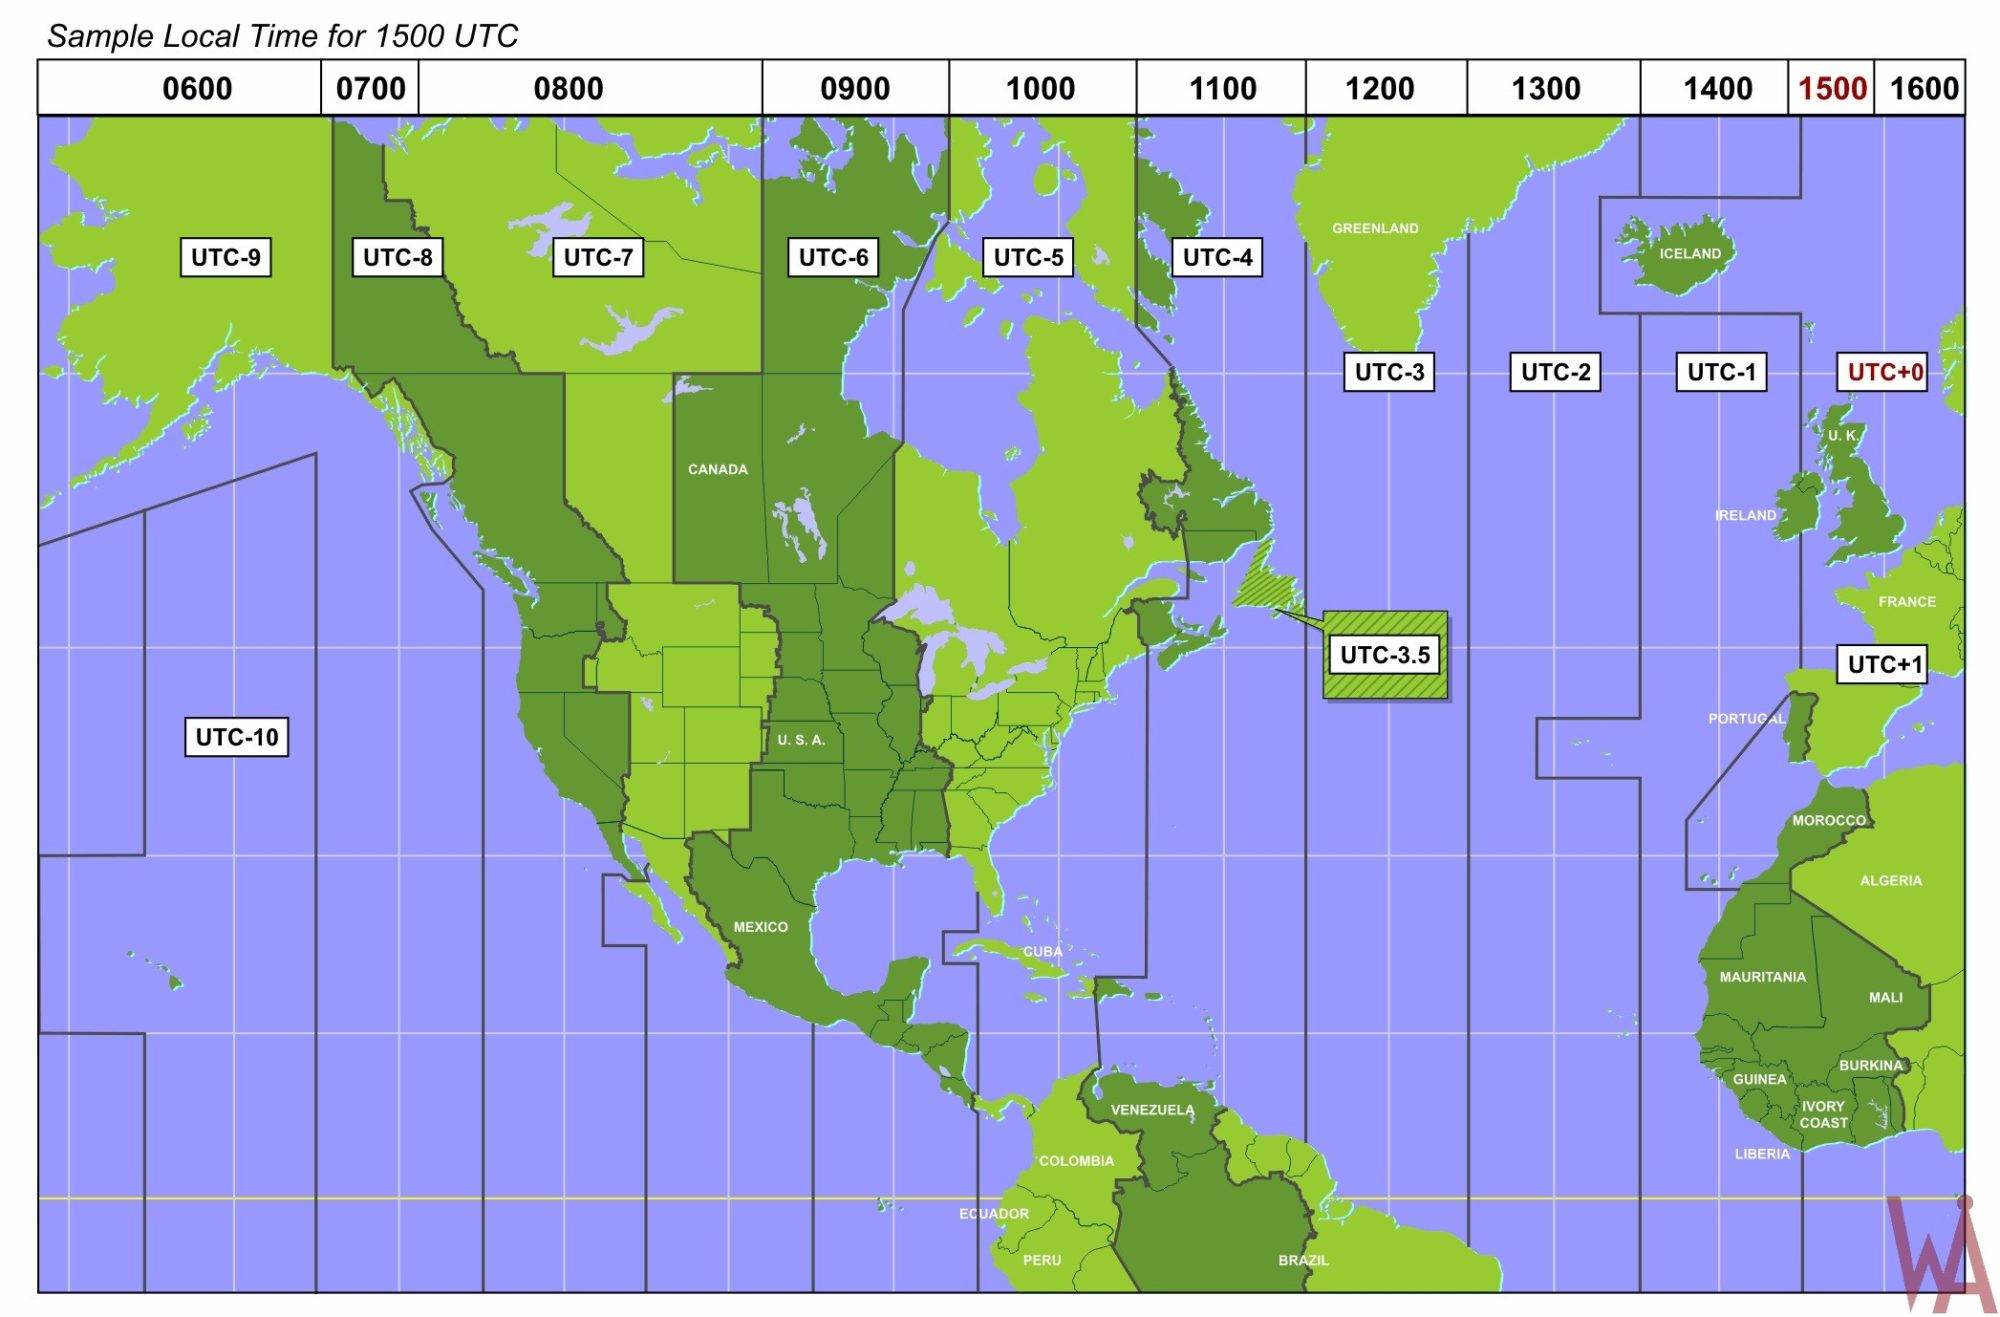 Detail Time Zone Map of North America | WhatsAnswer